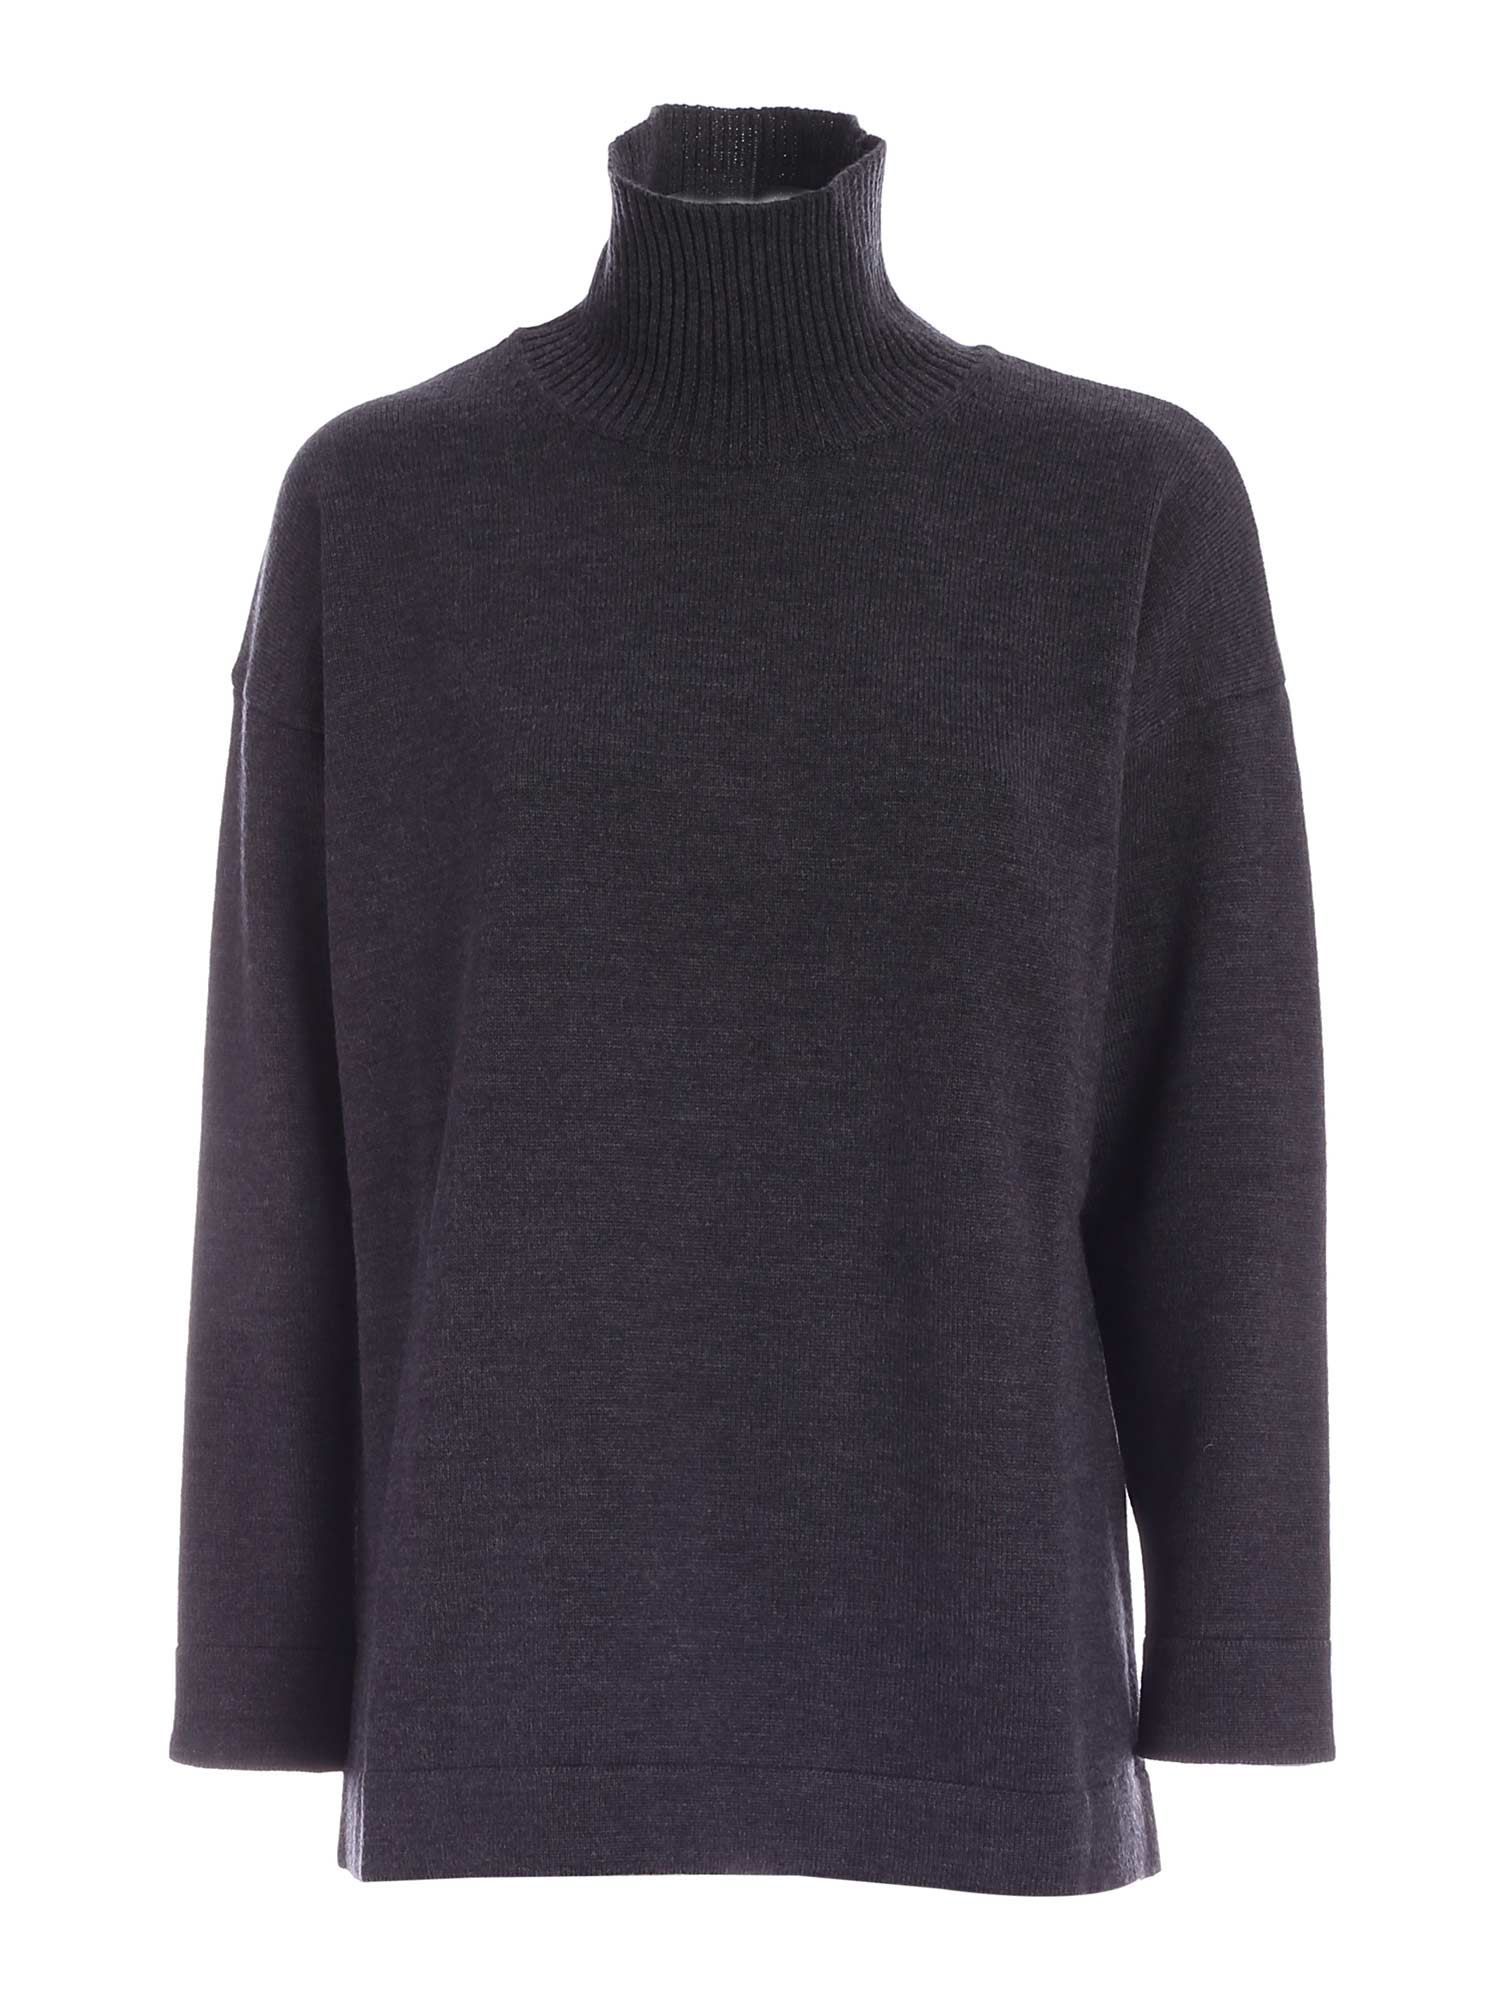 WOOL SWEATER MAX MARA | 10000016 | 3366130600012050004